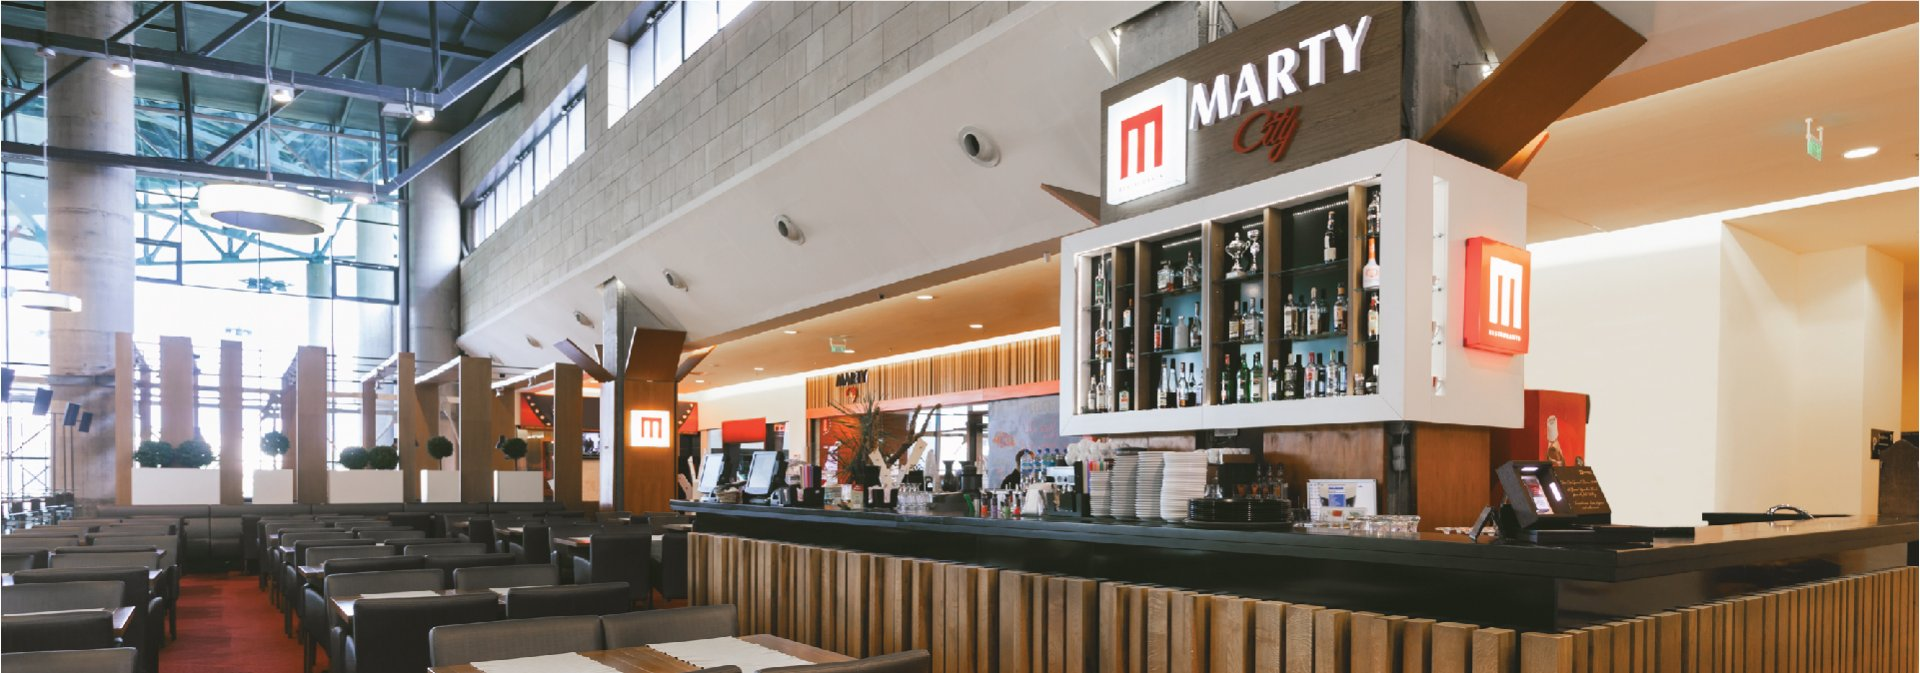 Marty Restaurants (Marty City), Cluj-Napoca, Cluj